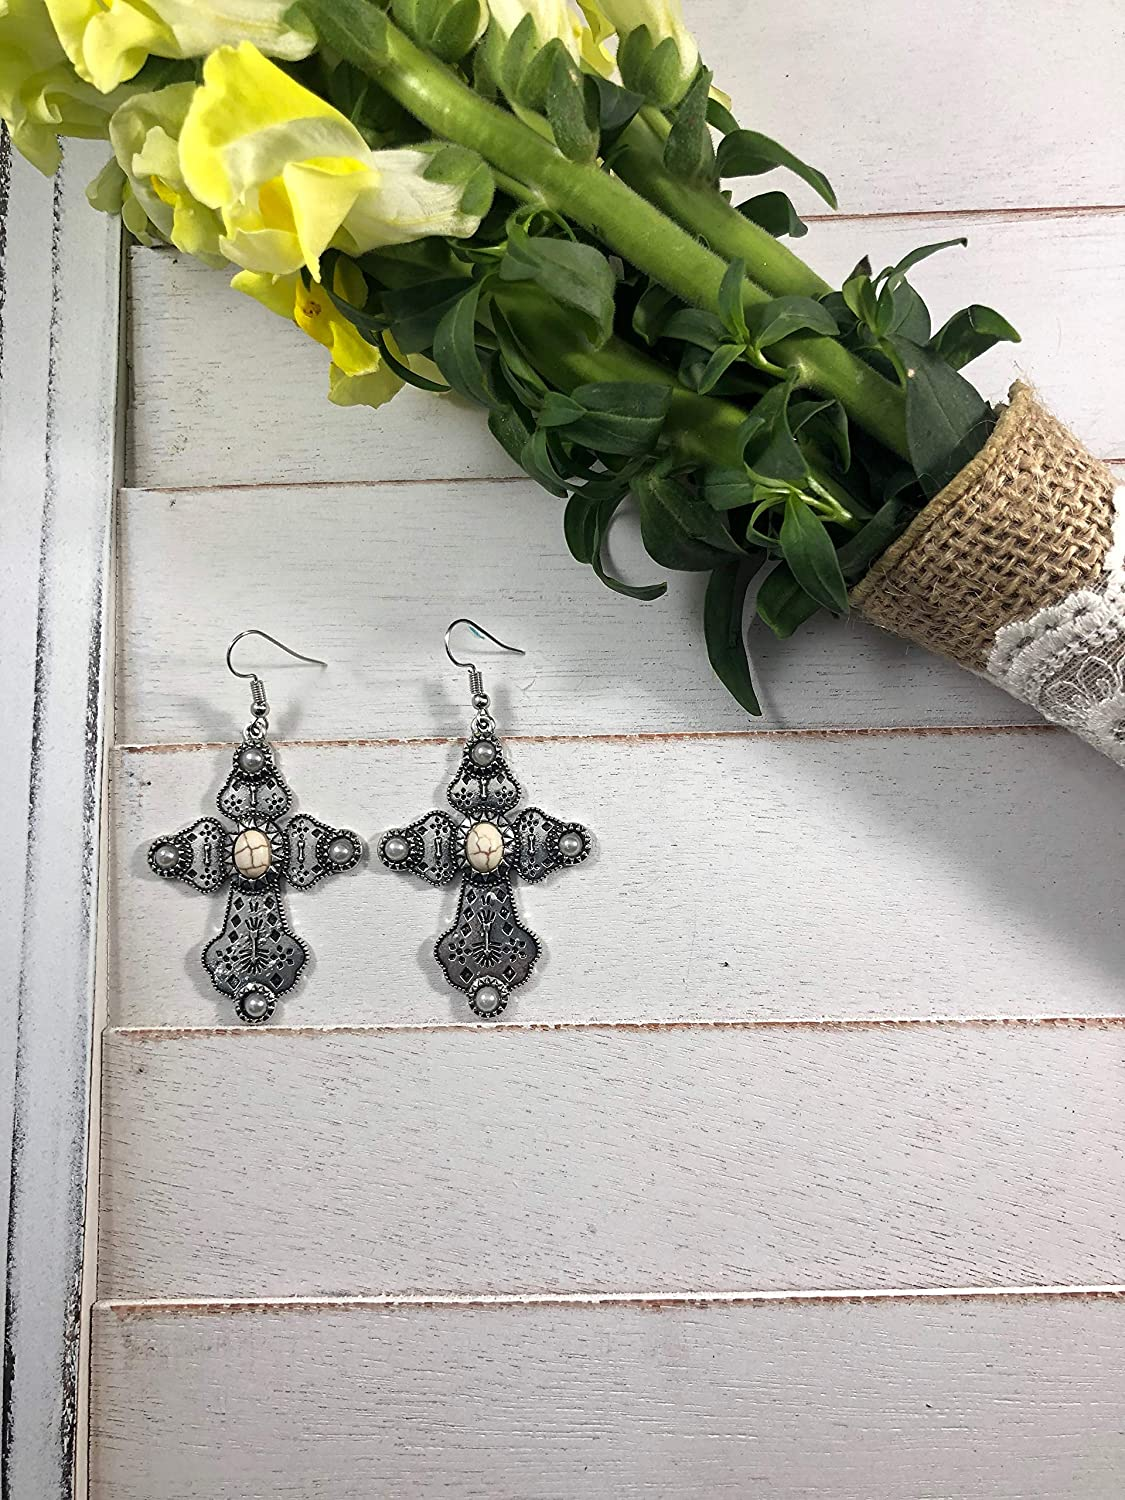 NoraJae Gems Detailed Silver Cross Earrings with White /& Pearl Stone Accent